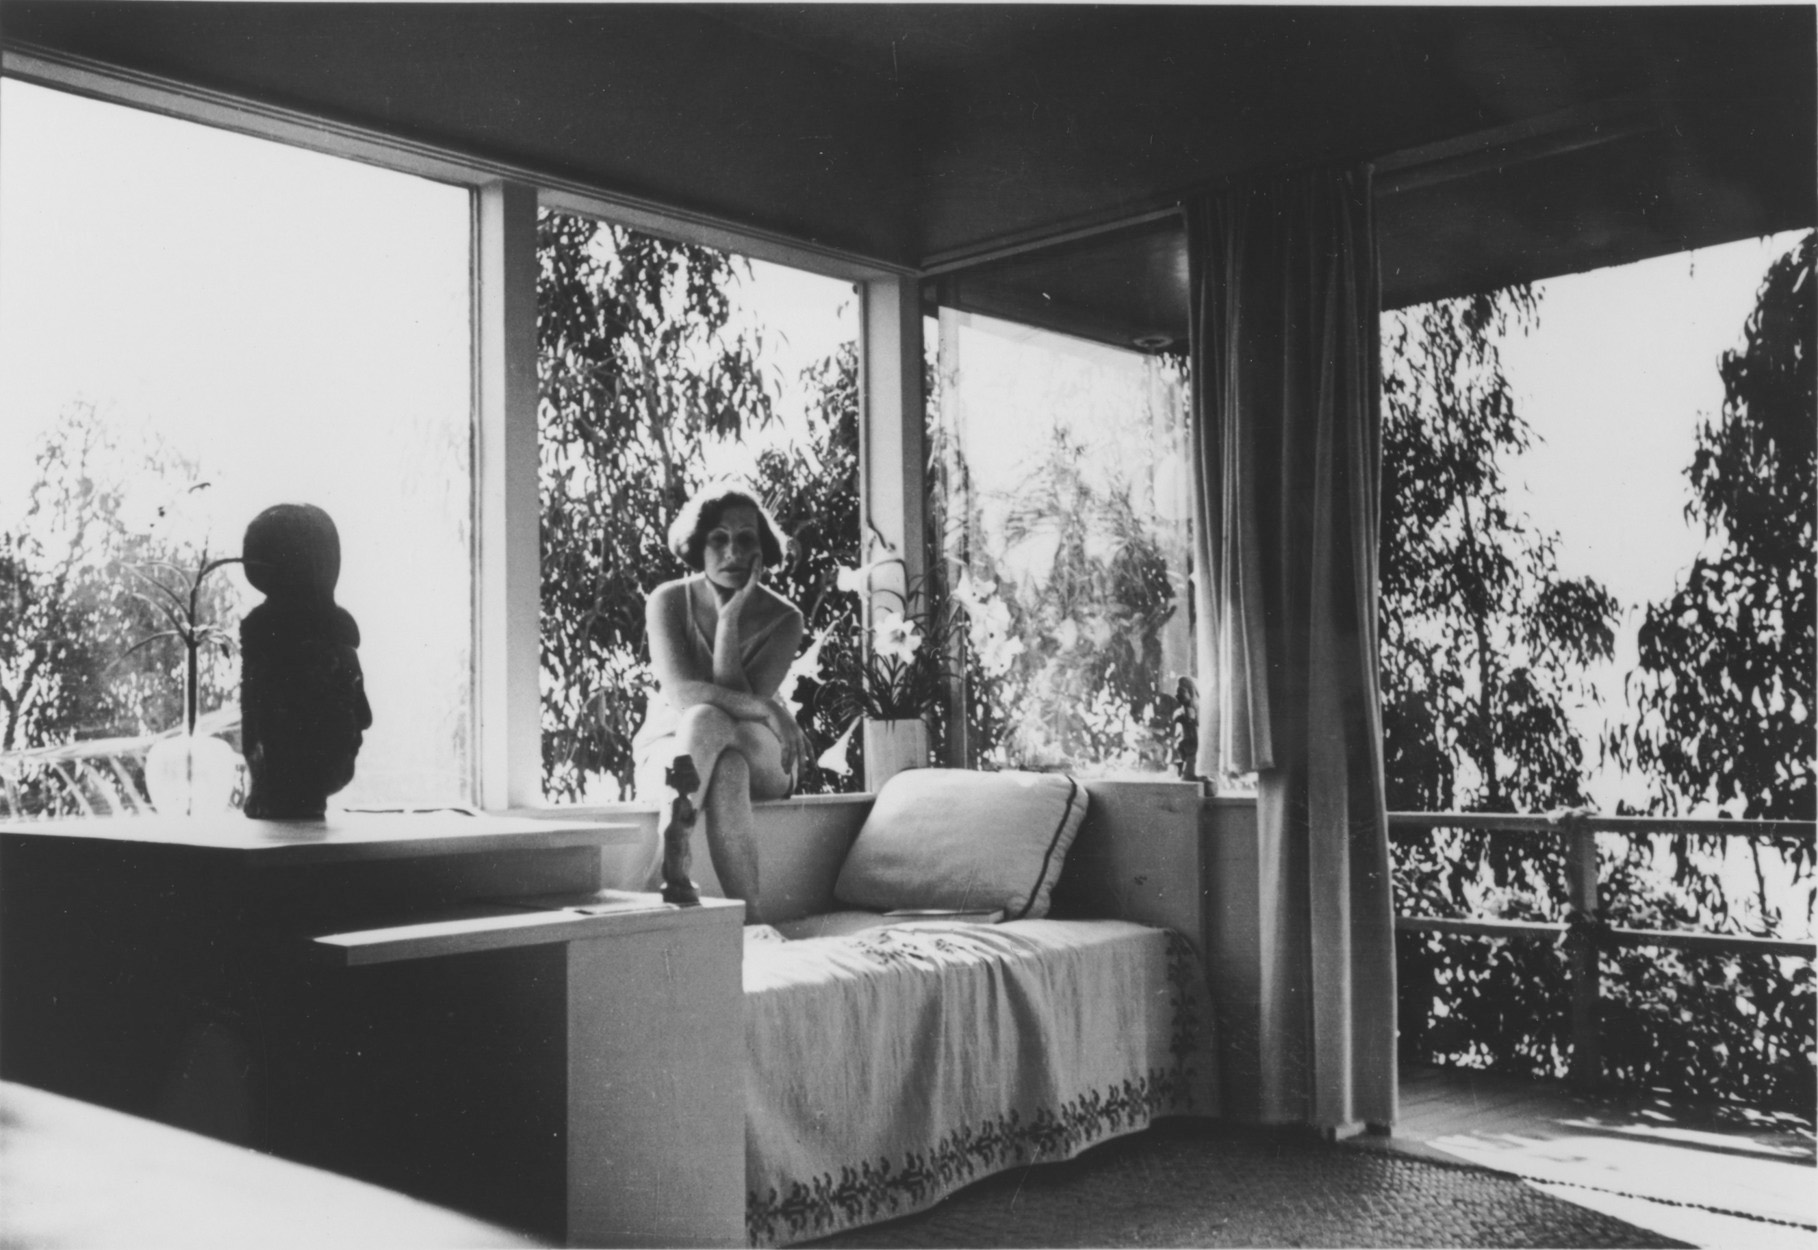 Galka Scheyer in her Hollywood Hills house designed by Richard Neutra. Lette Vaselka, <em>Galka Scheyer in Sunsuit, Seated on Windowsill</em>, ca. 1940-43. Photograph, 3 1/2 x 4 3/4 in. Courtesy of the Blue Four Galka Scheyer Collection Archives, Norton Simon Museum, Pasadena, CA.